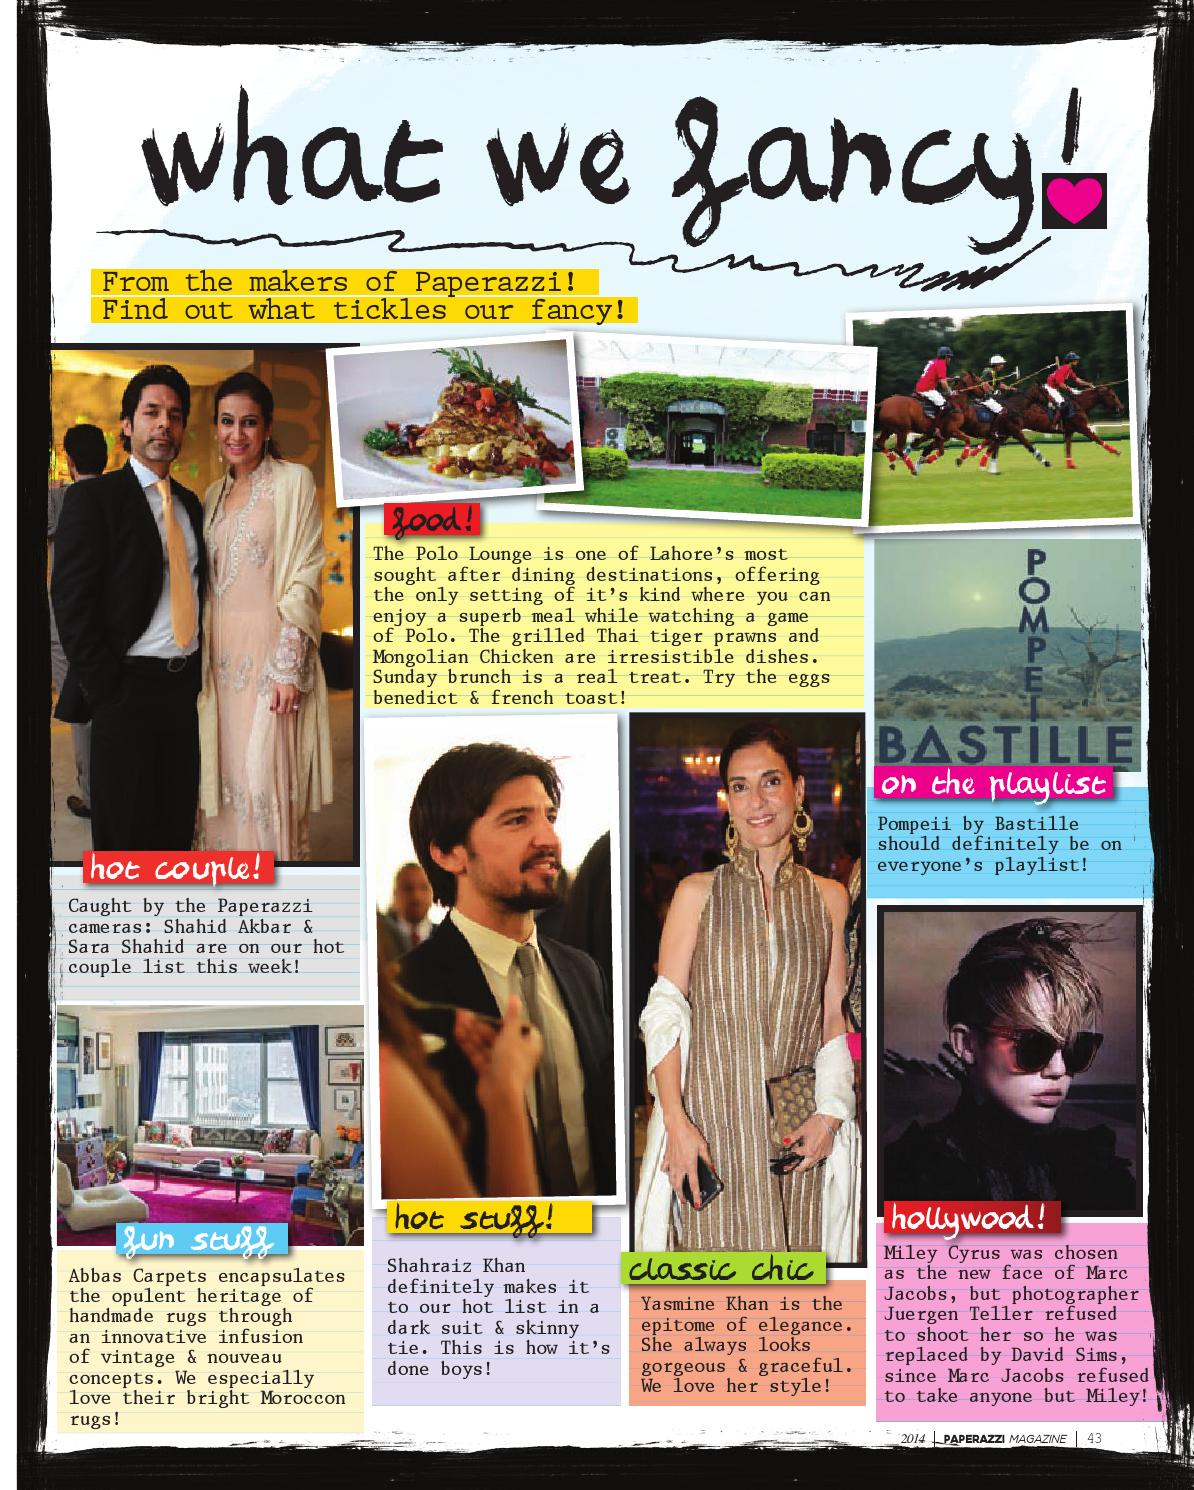 3eaa81b6f1e Pakistan Today paperazzi issue 20